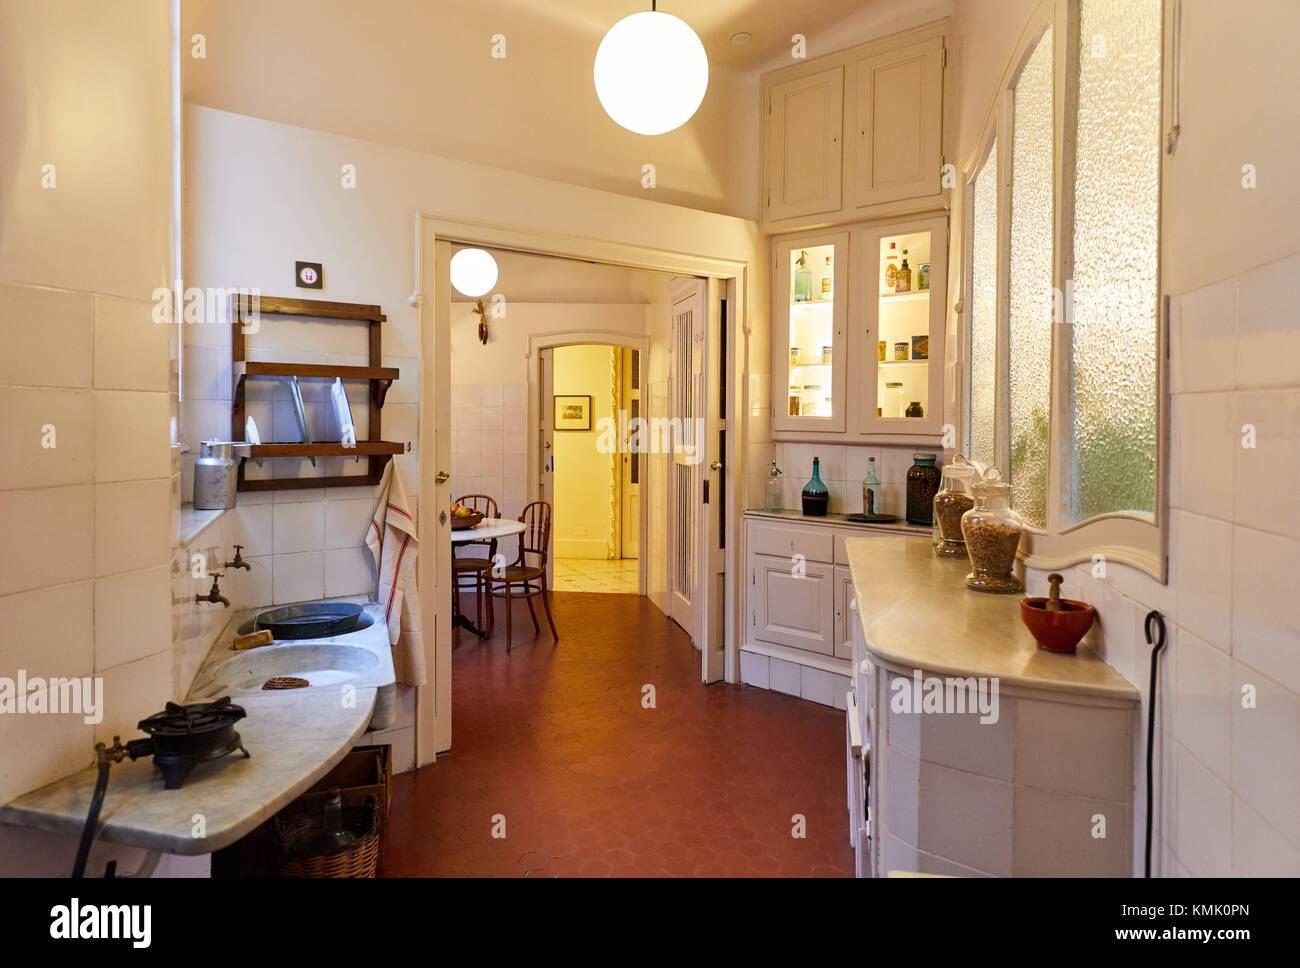 Apartment, recreation of an original bourgeois apartment in the beginning of 20th century at Casa Mila, La Pedrera - Stock Image